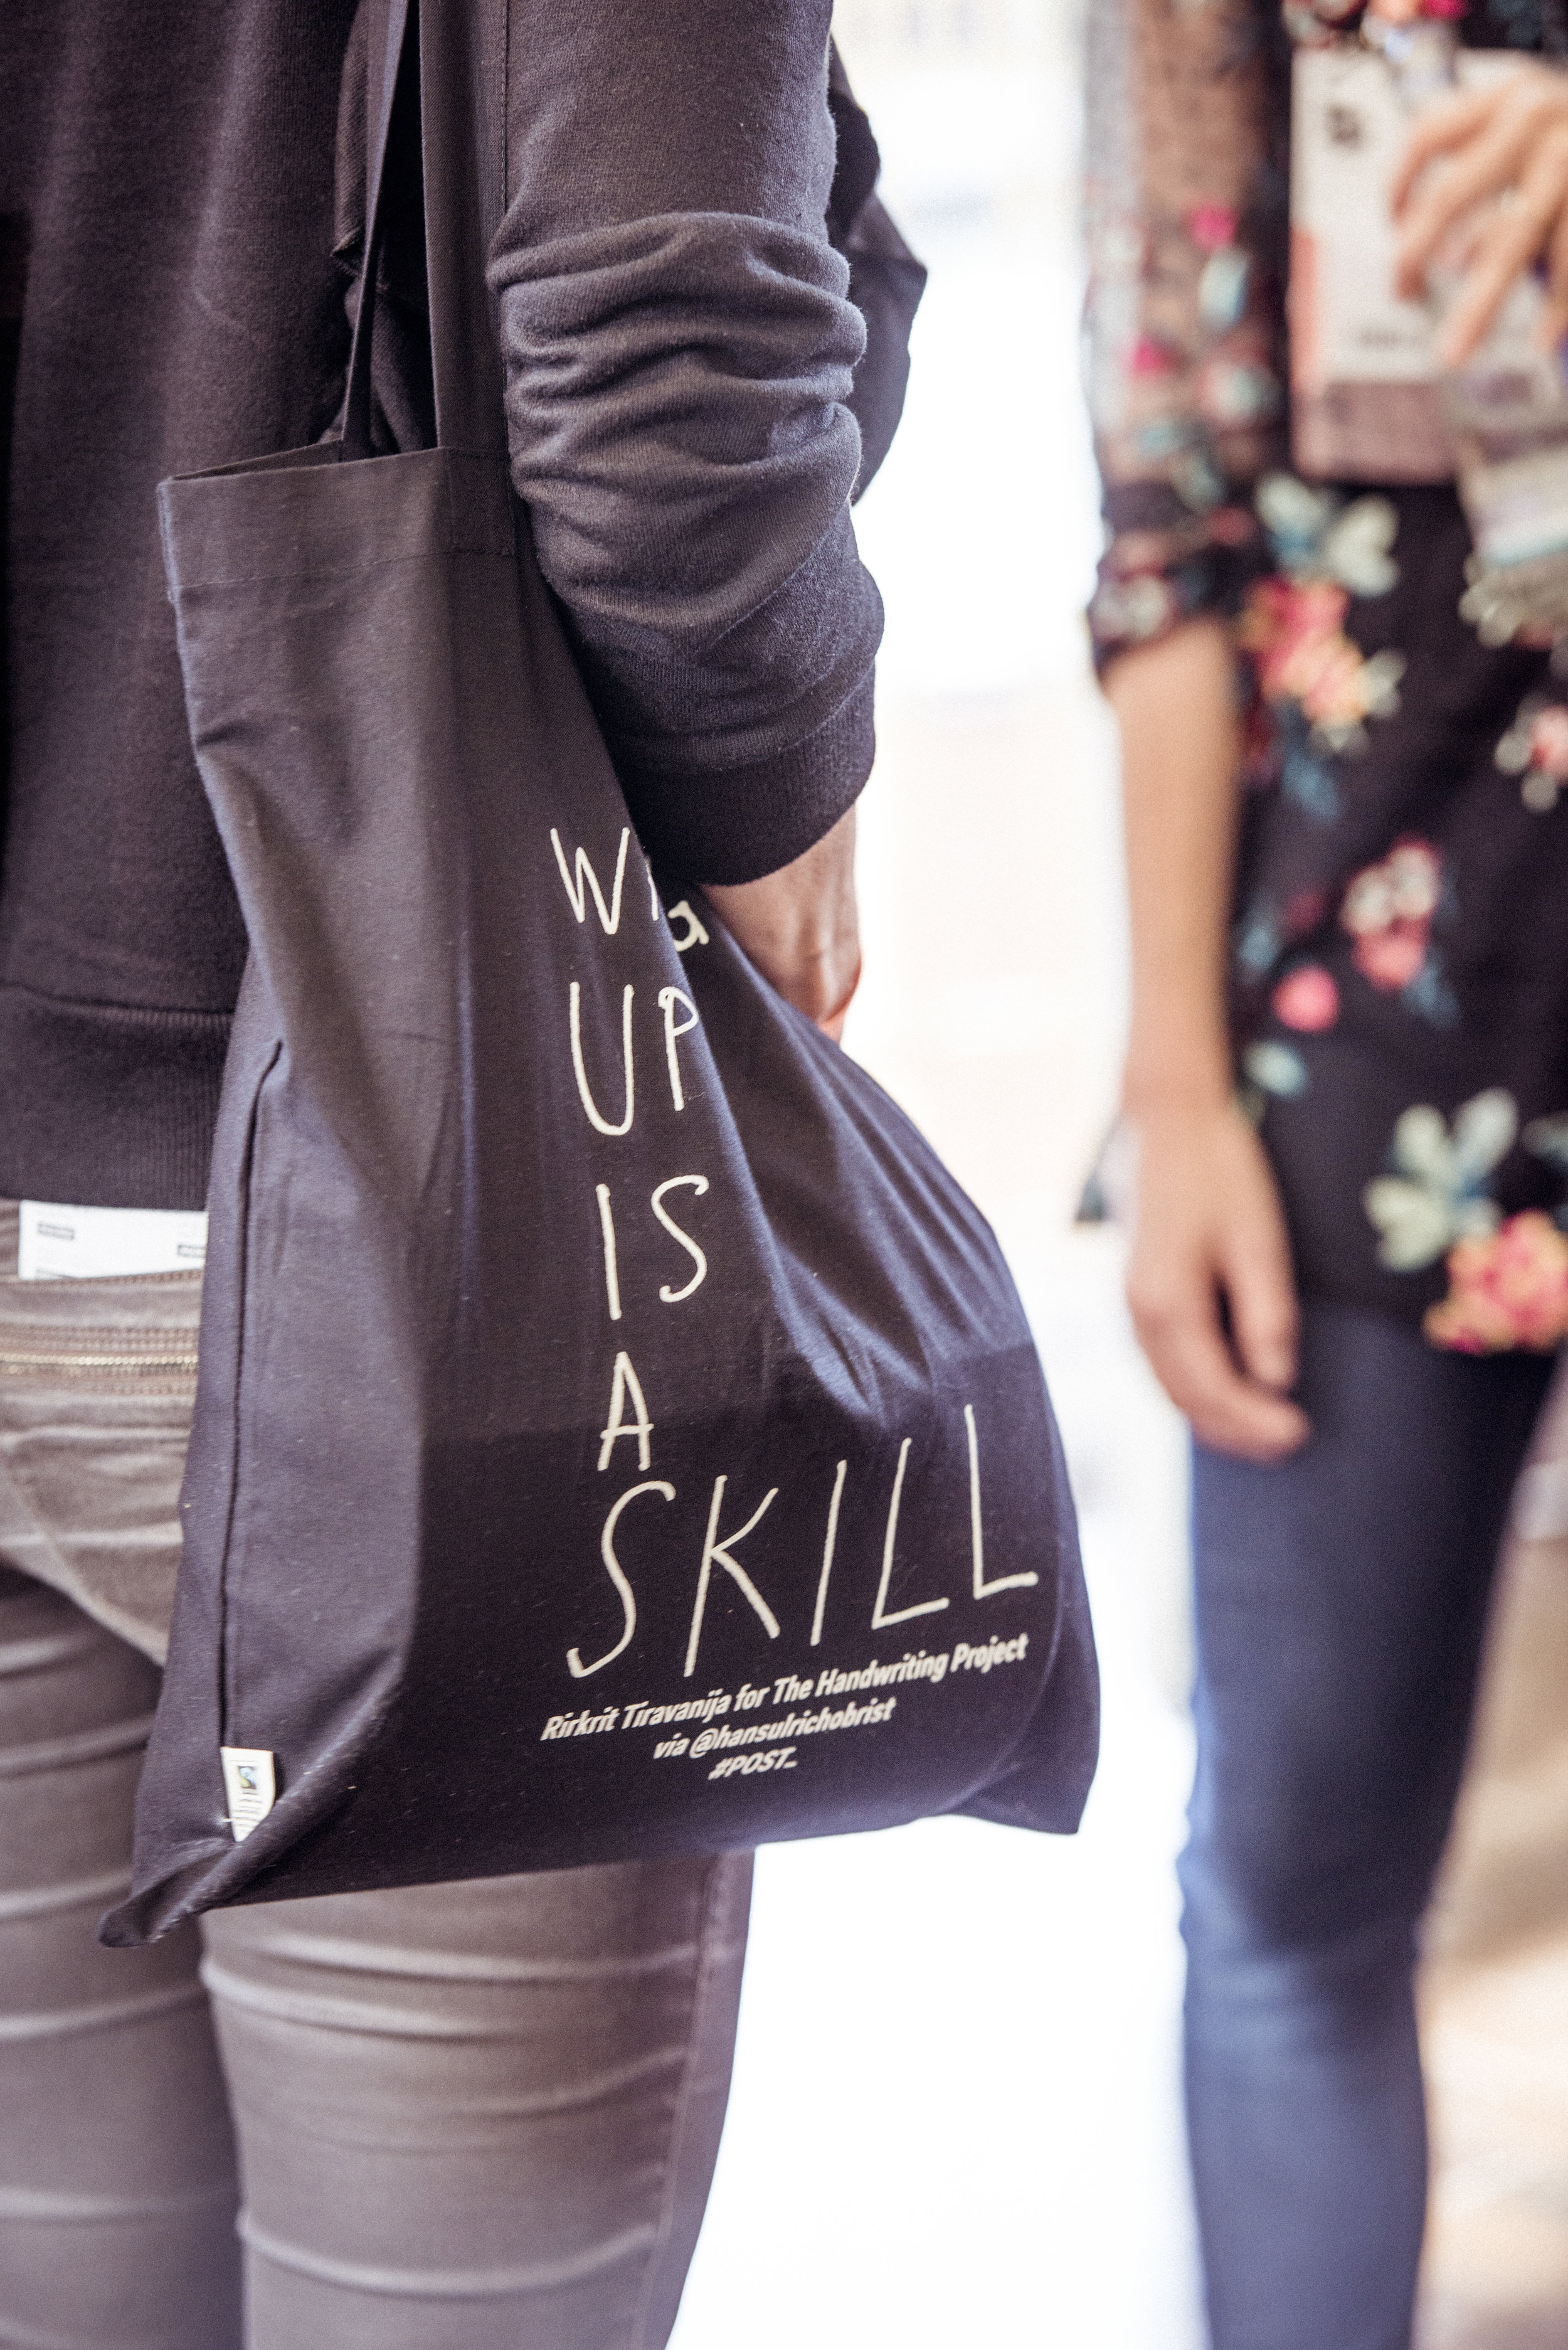 """Waking Up Is A Skill"" by artist Rirkrit Tiravanija for POST_, a project by Hans Ulrich Obrist and ForYourArt. Key phrases from POST_ were selected to be featured on guest totes, displayed on event walls, and showcased on screen between sessions (photo by Stefanos Notopoulos)."